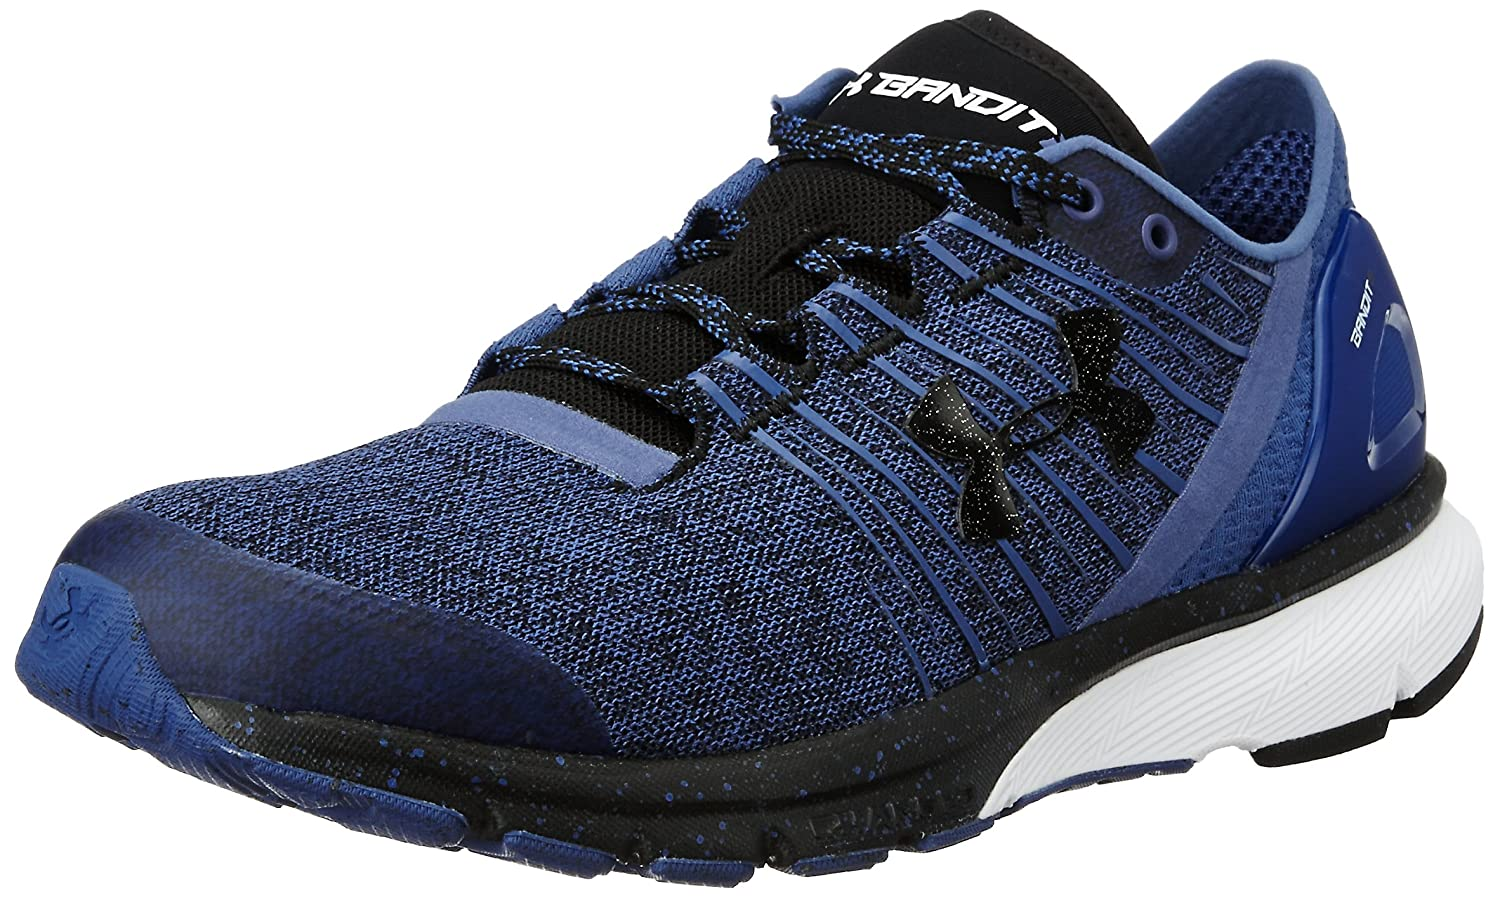 Under Armour Women's Charged Bandit 2 Cross-Country Running Shoe B01GPKG0OS 7 M US|Deep Periwinkle (178)/White